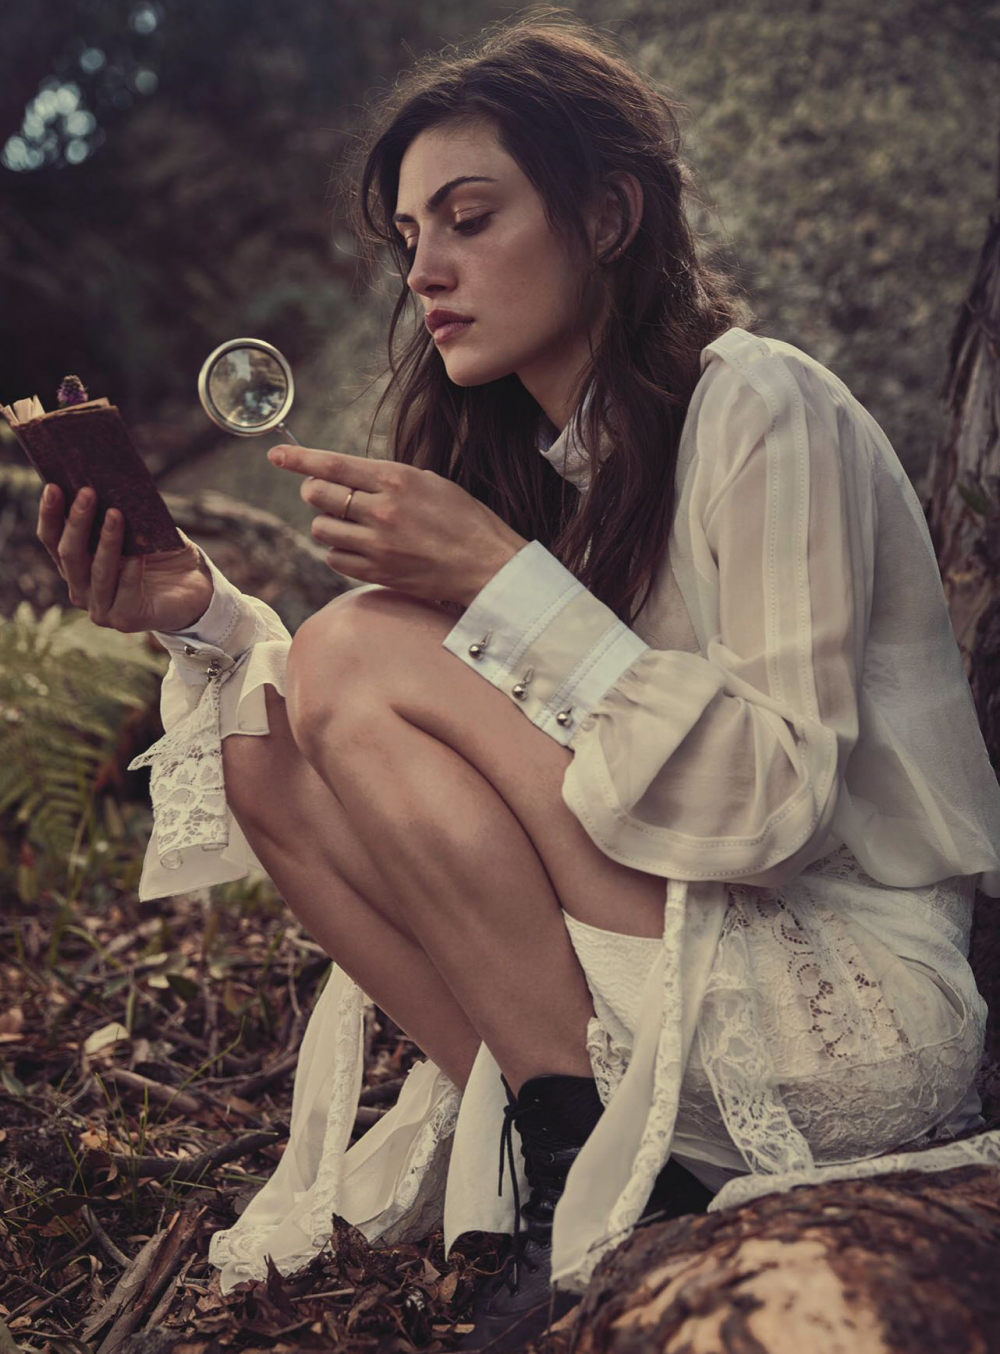 PHOEBE TONKIN FOR VOGUE AUSTRALIA MARCH 2015